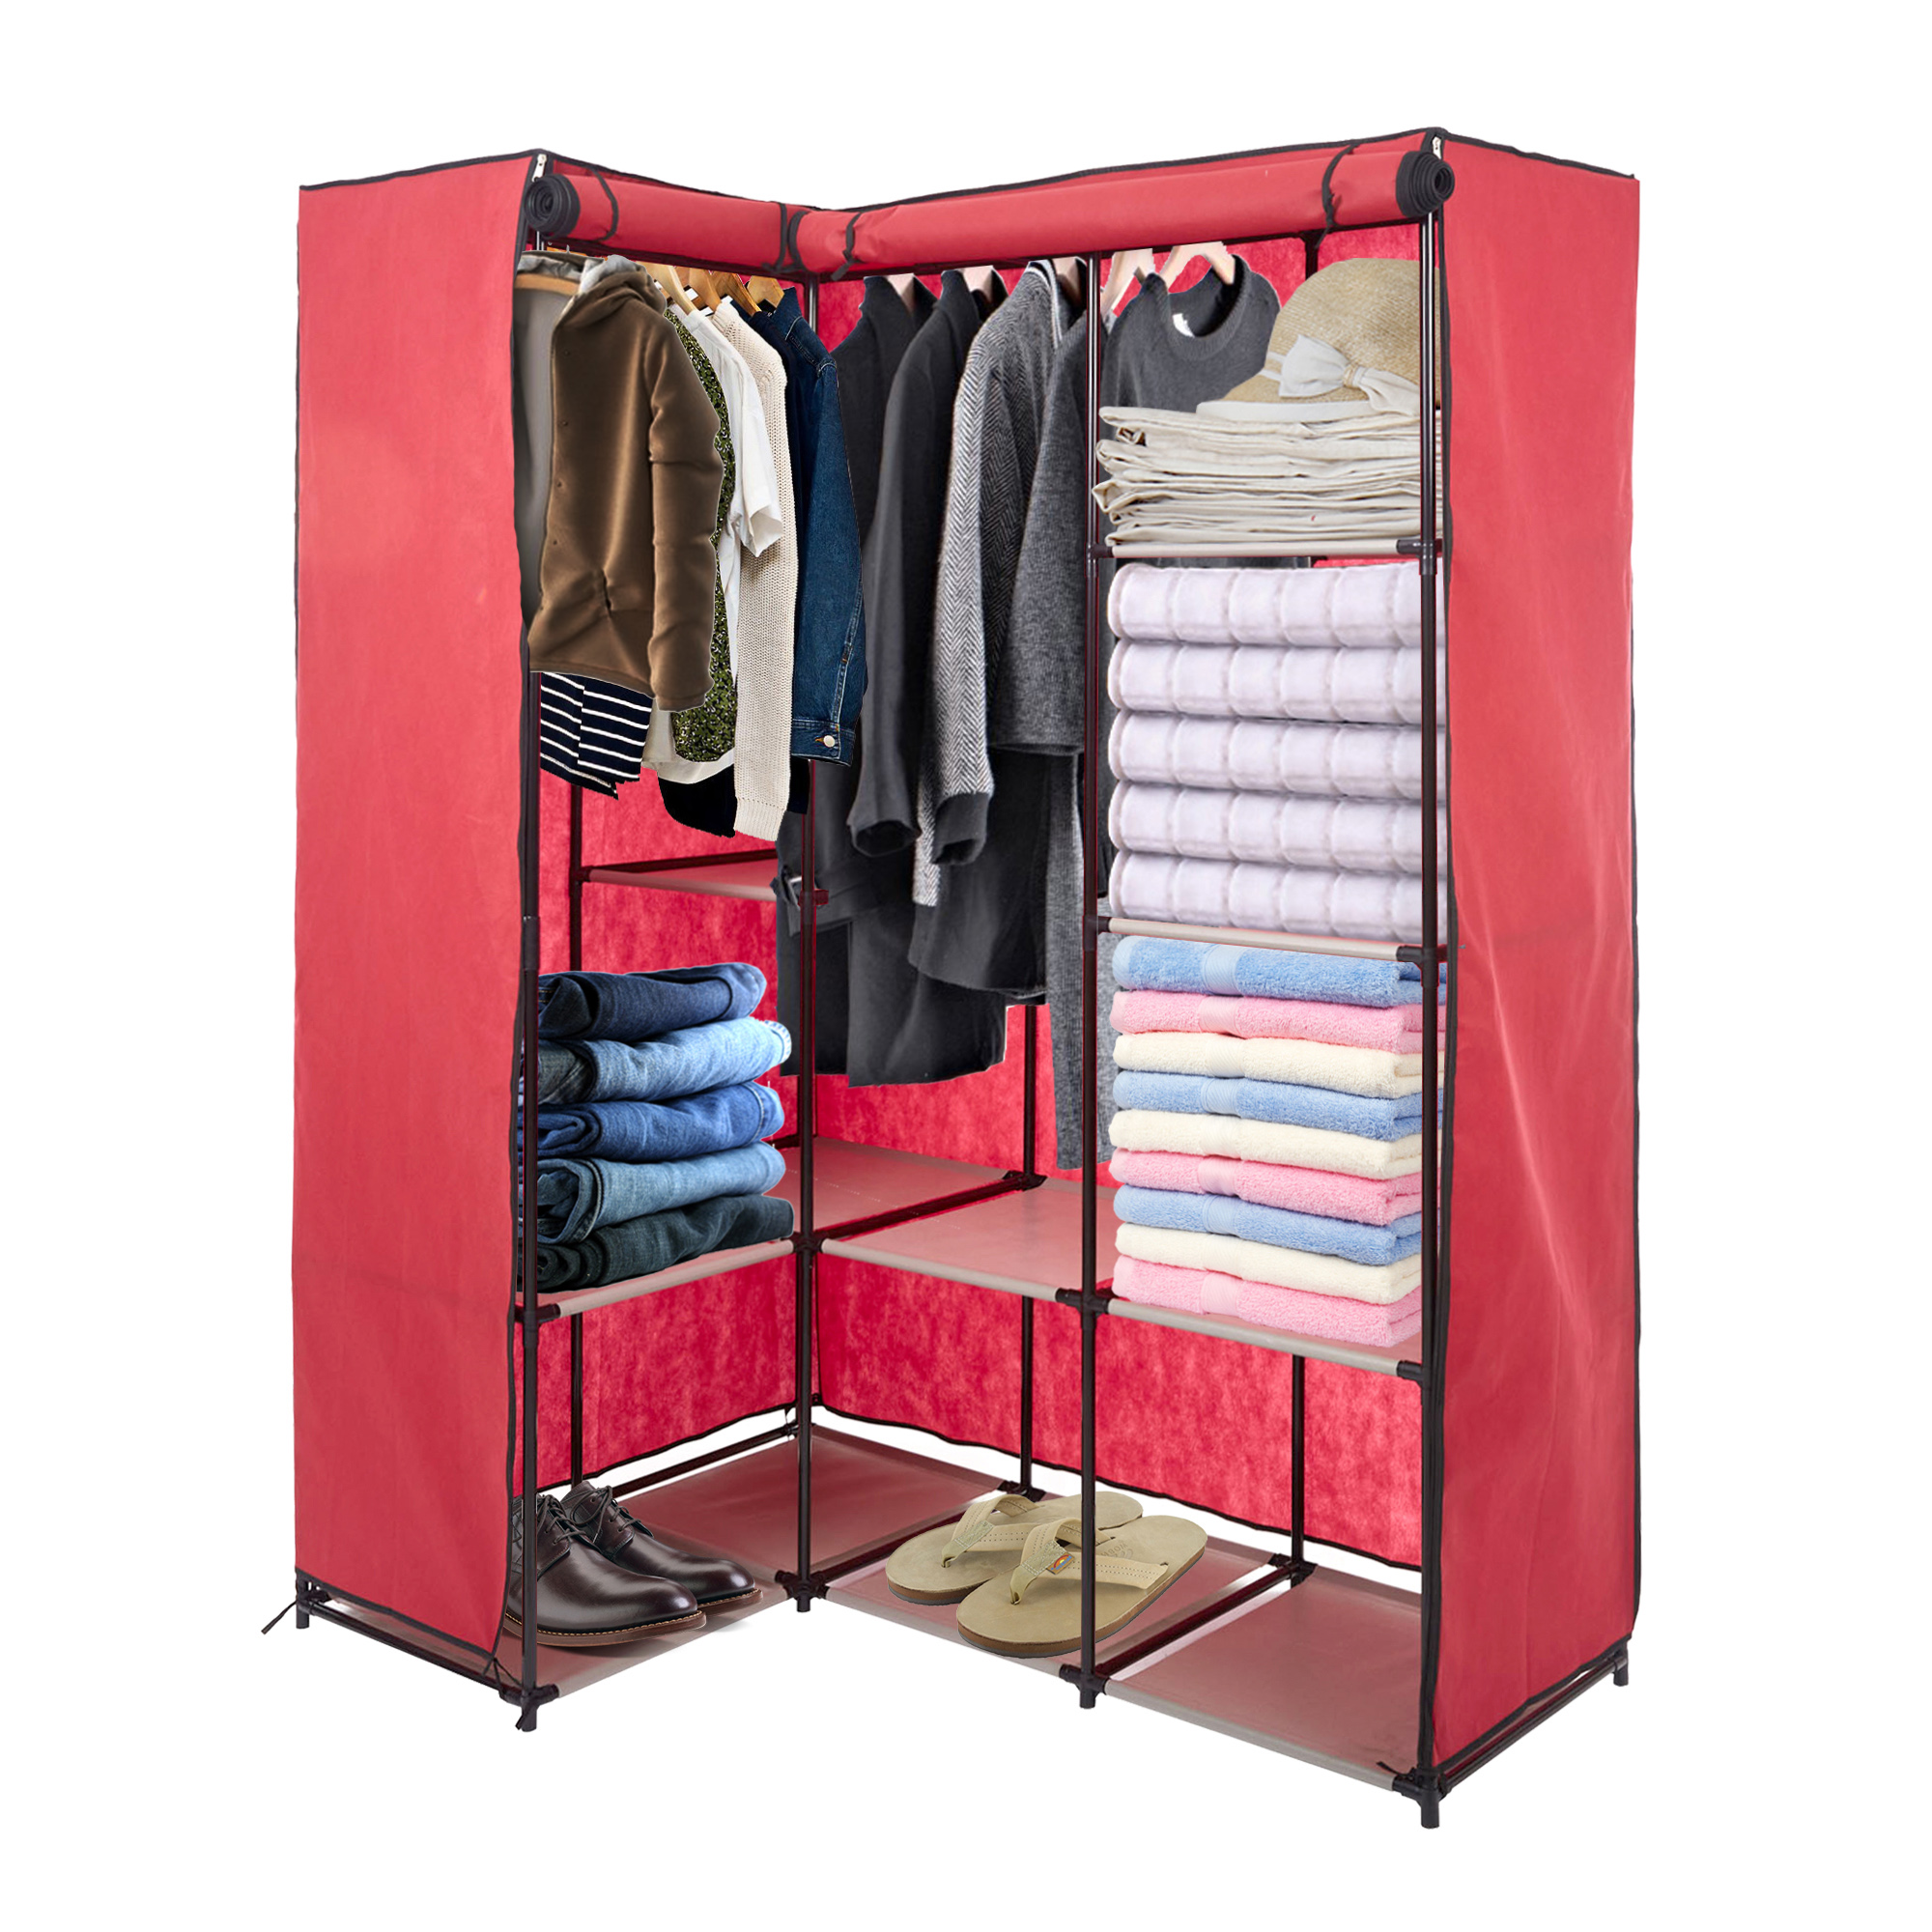 Charmant KARMAS PRODUCT Portable Wardrobe Closets Organizer Cloth Closet Shelves  L Shape Non Woven Fabric Cover Space Saving Clothes Organizer Perfect For  Bedroom ...